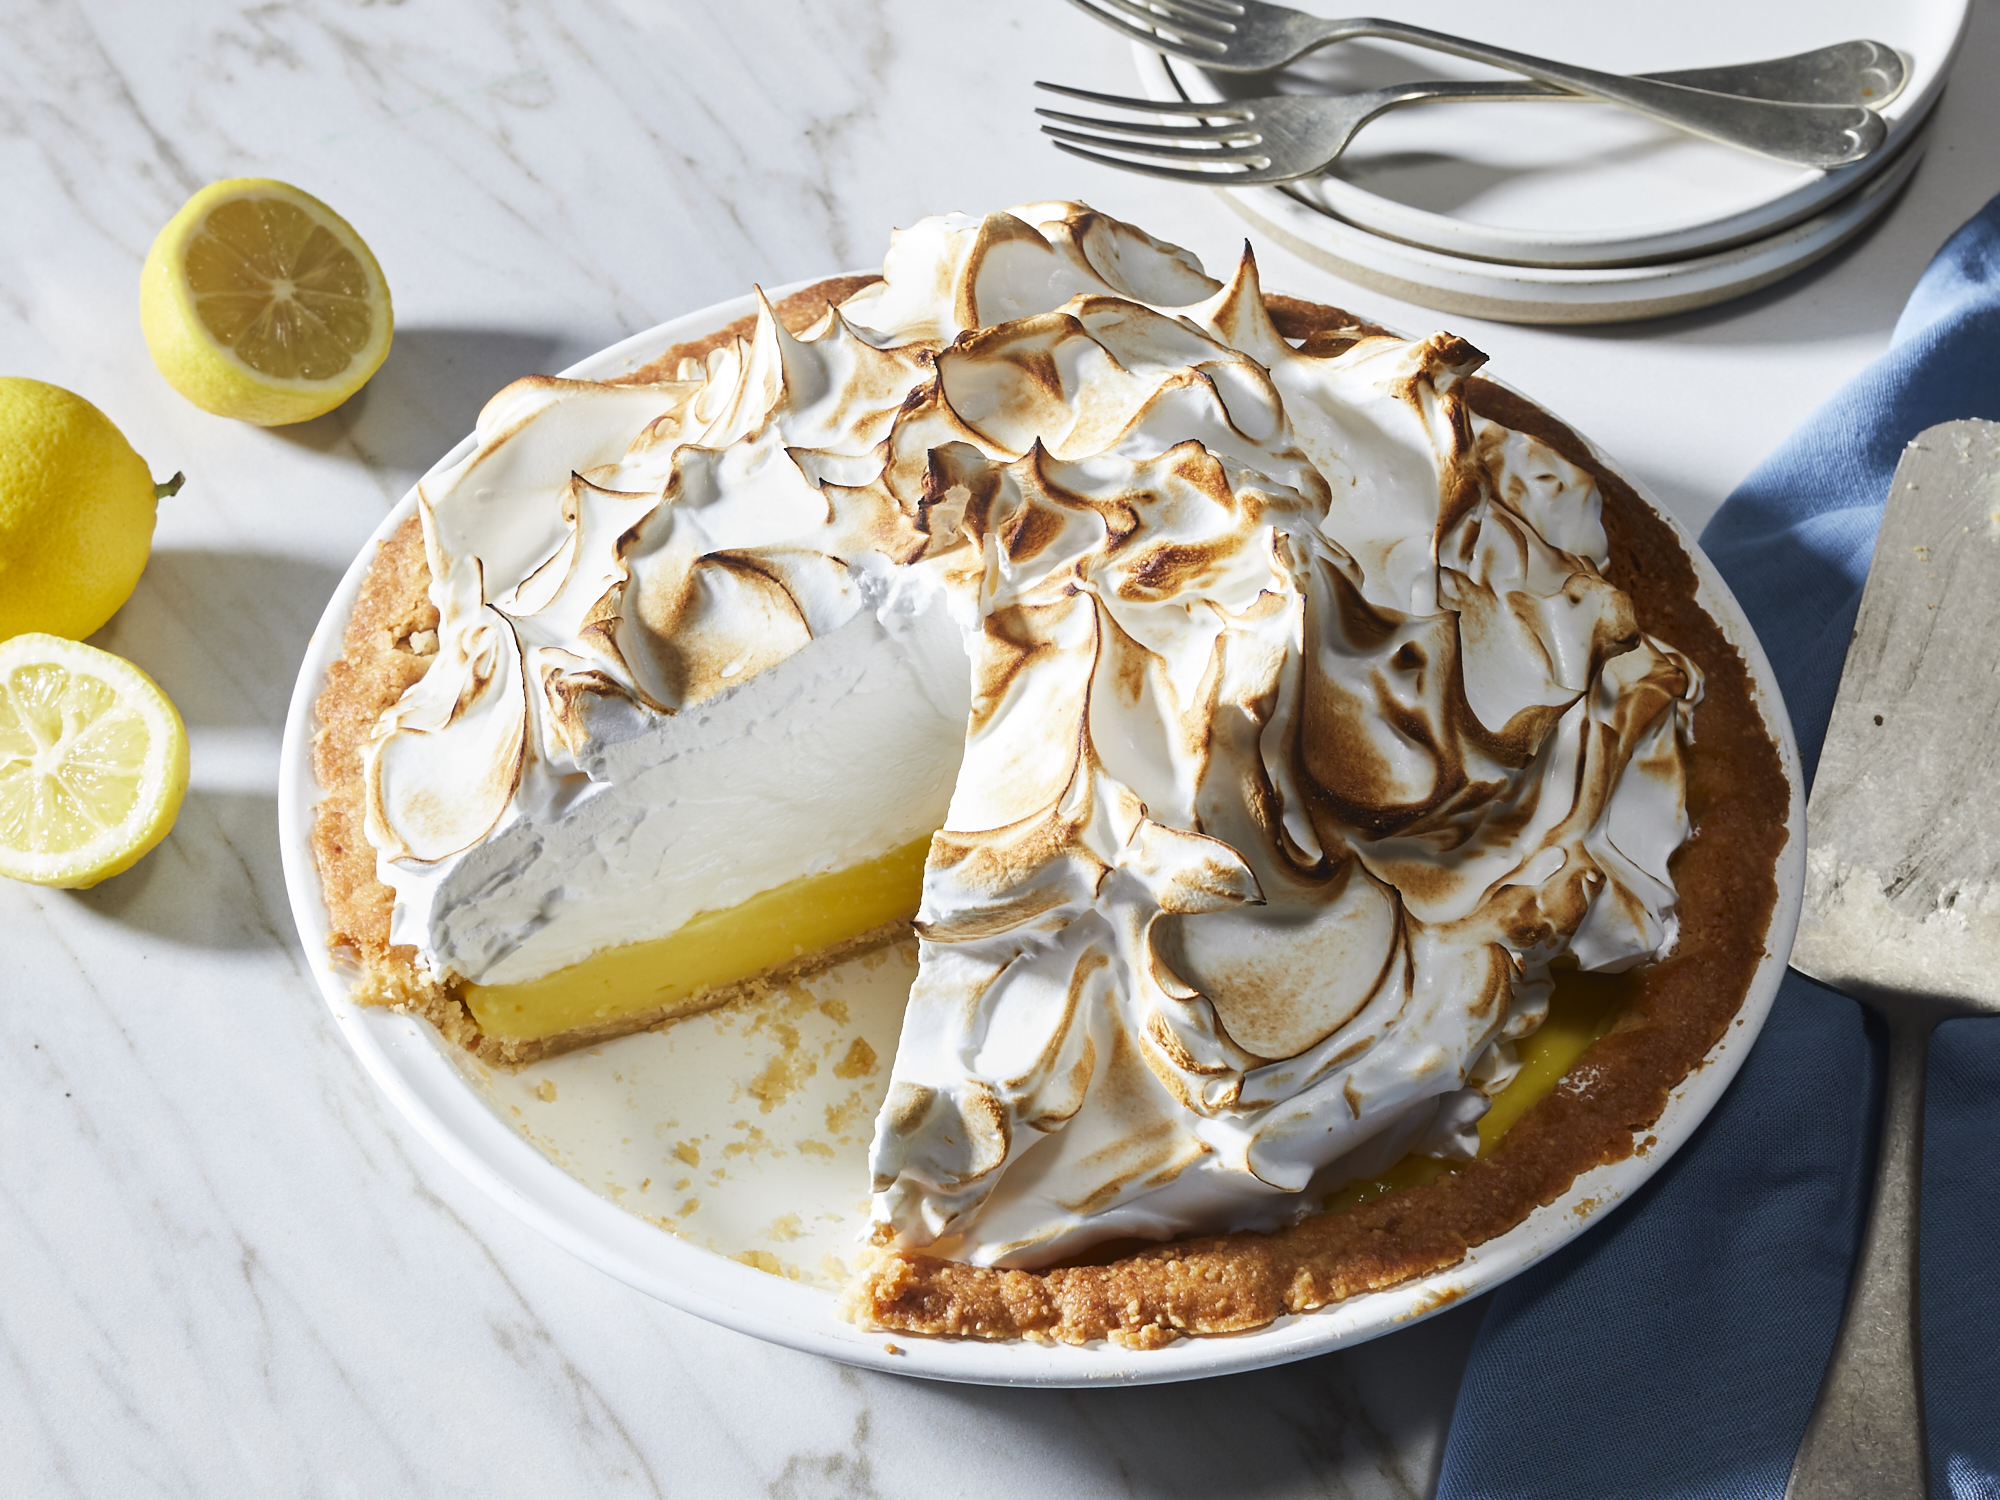 Lemon Meringue Pie with Marcona Shortbread Crust